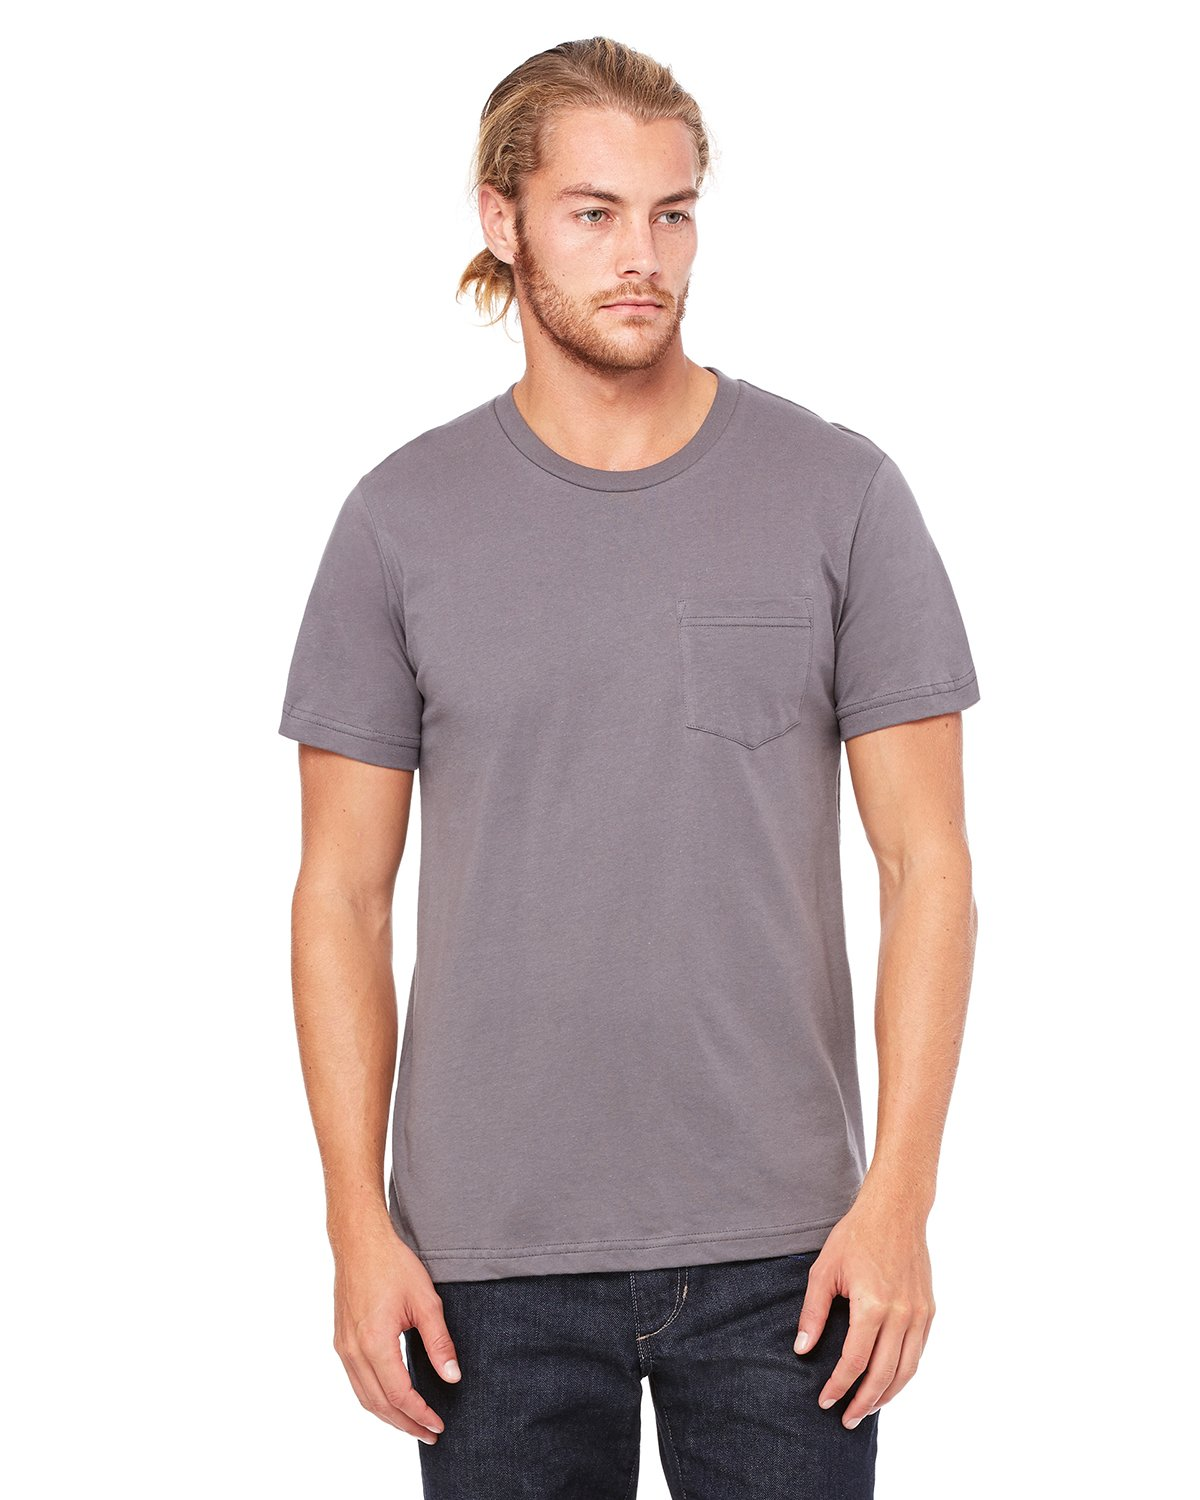 Bella + Canvas - 3021 - Men's Jersey Short-Sleeve Pocket T-Shirt